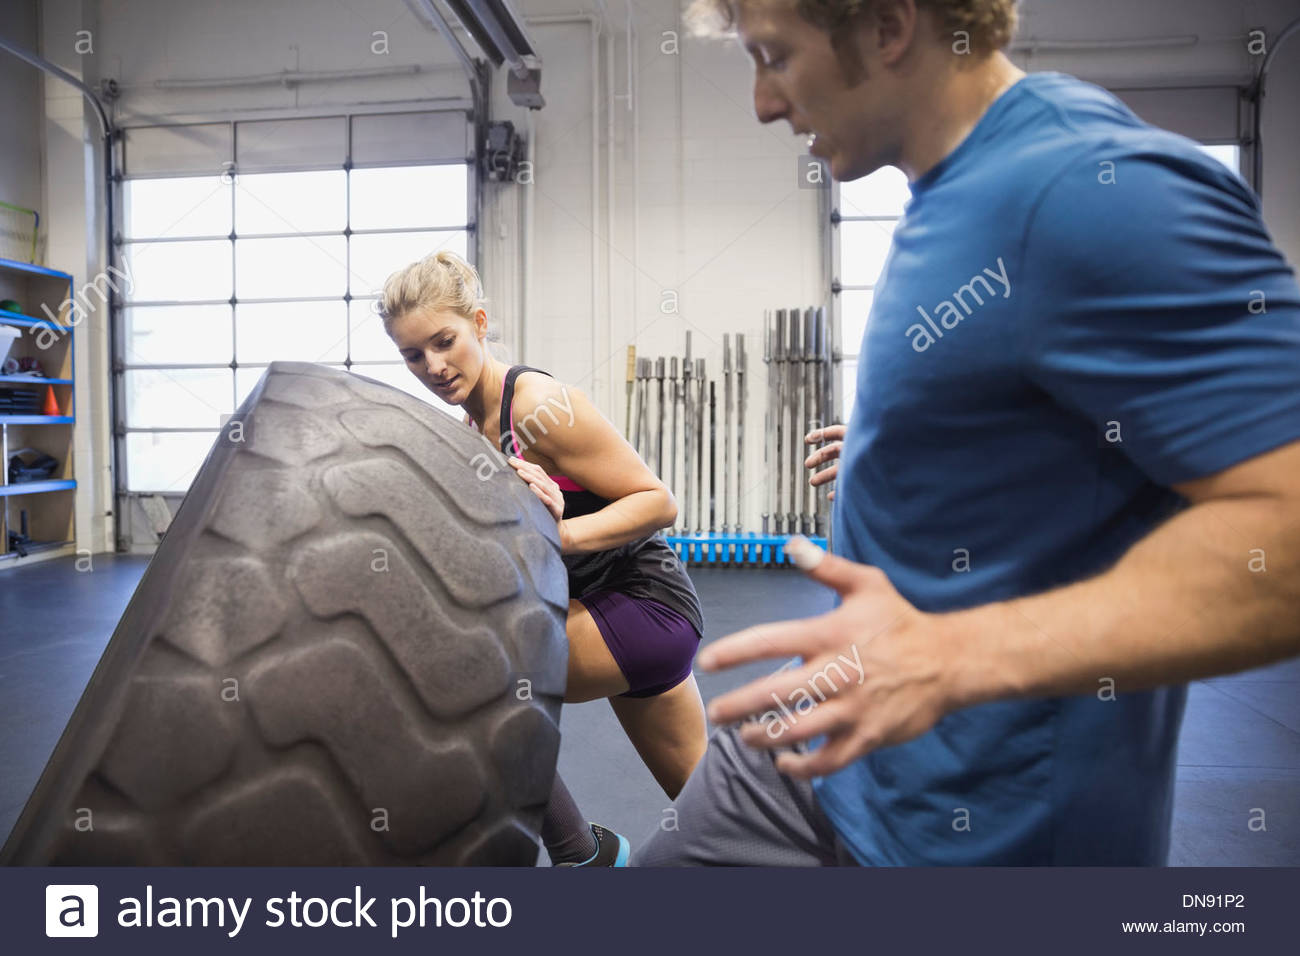 Instructor guiding woman in tire-flip workout - Stock Image